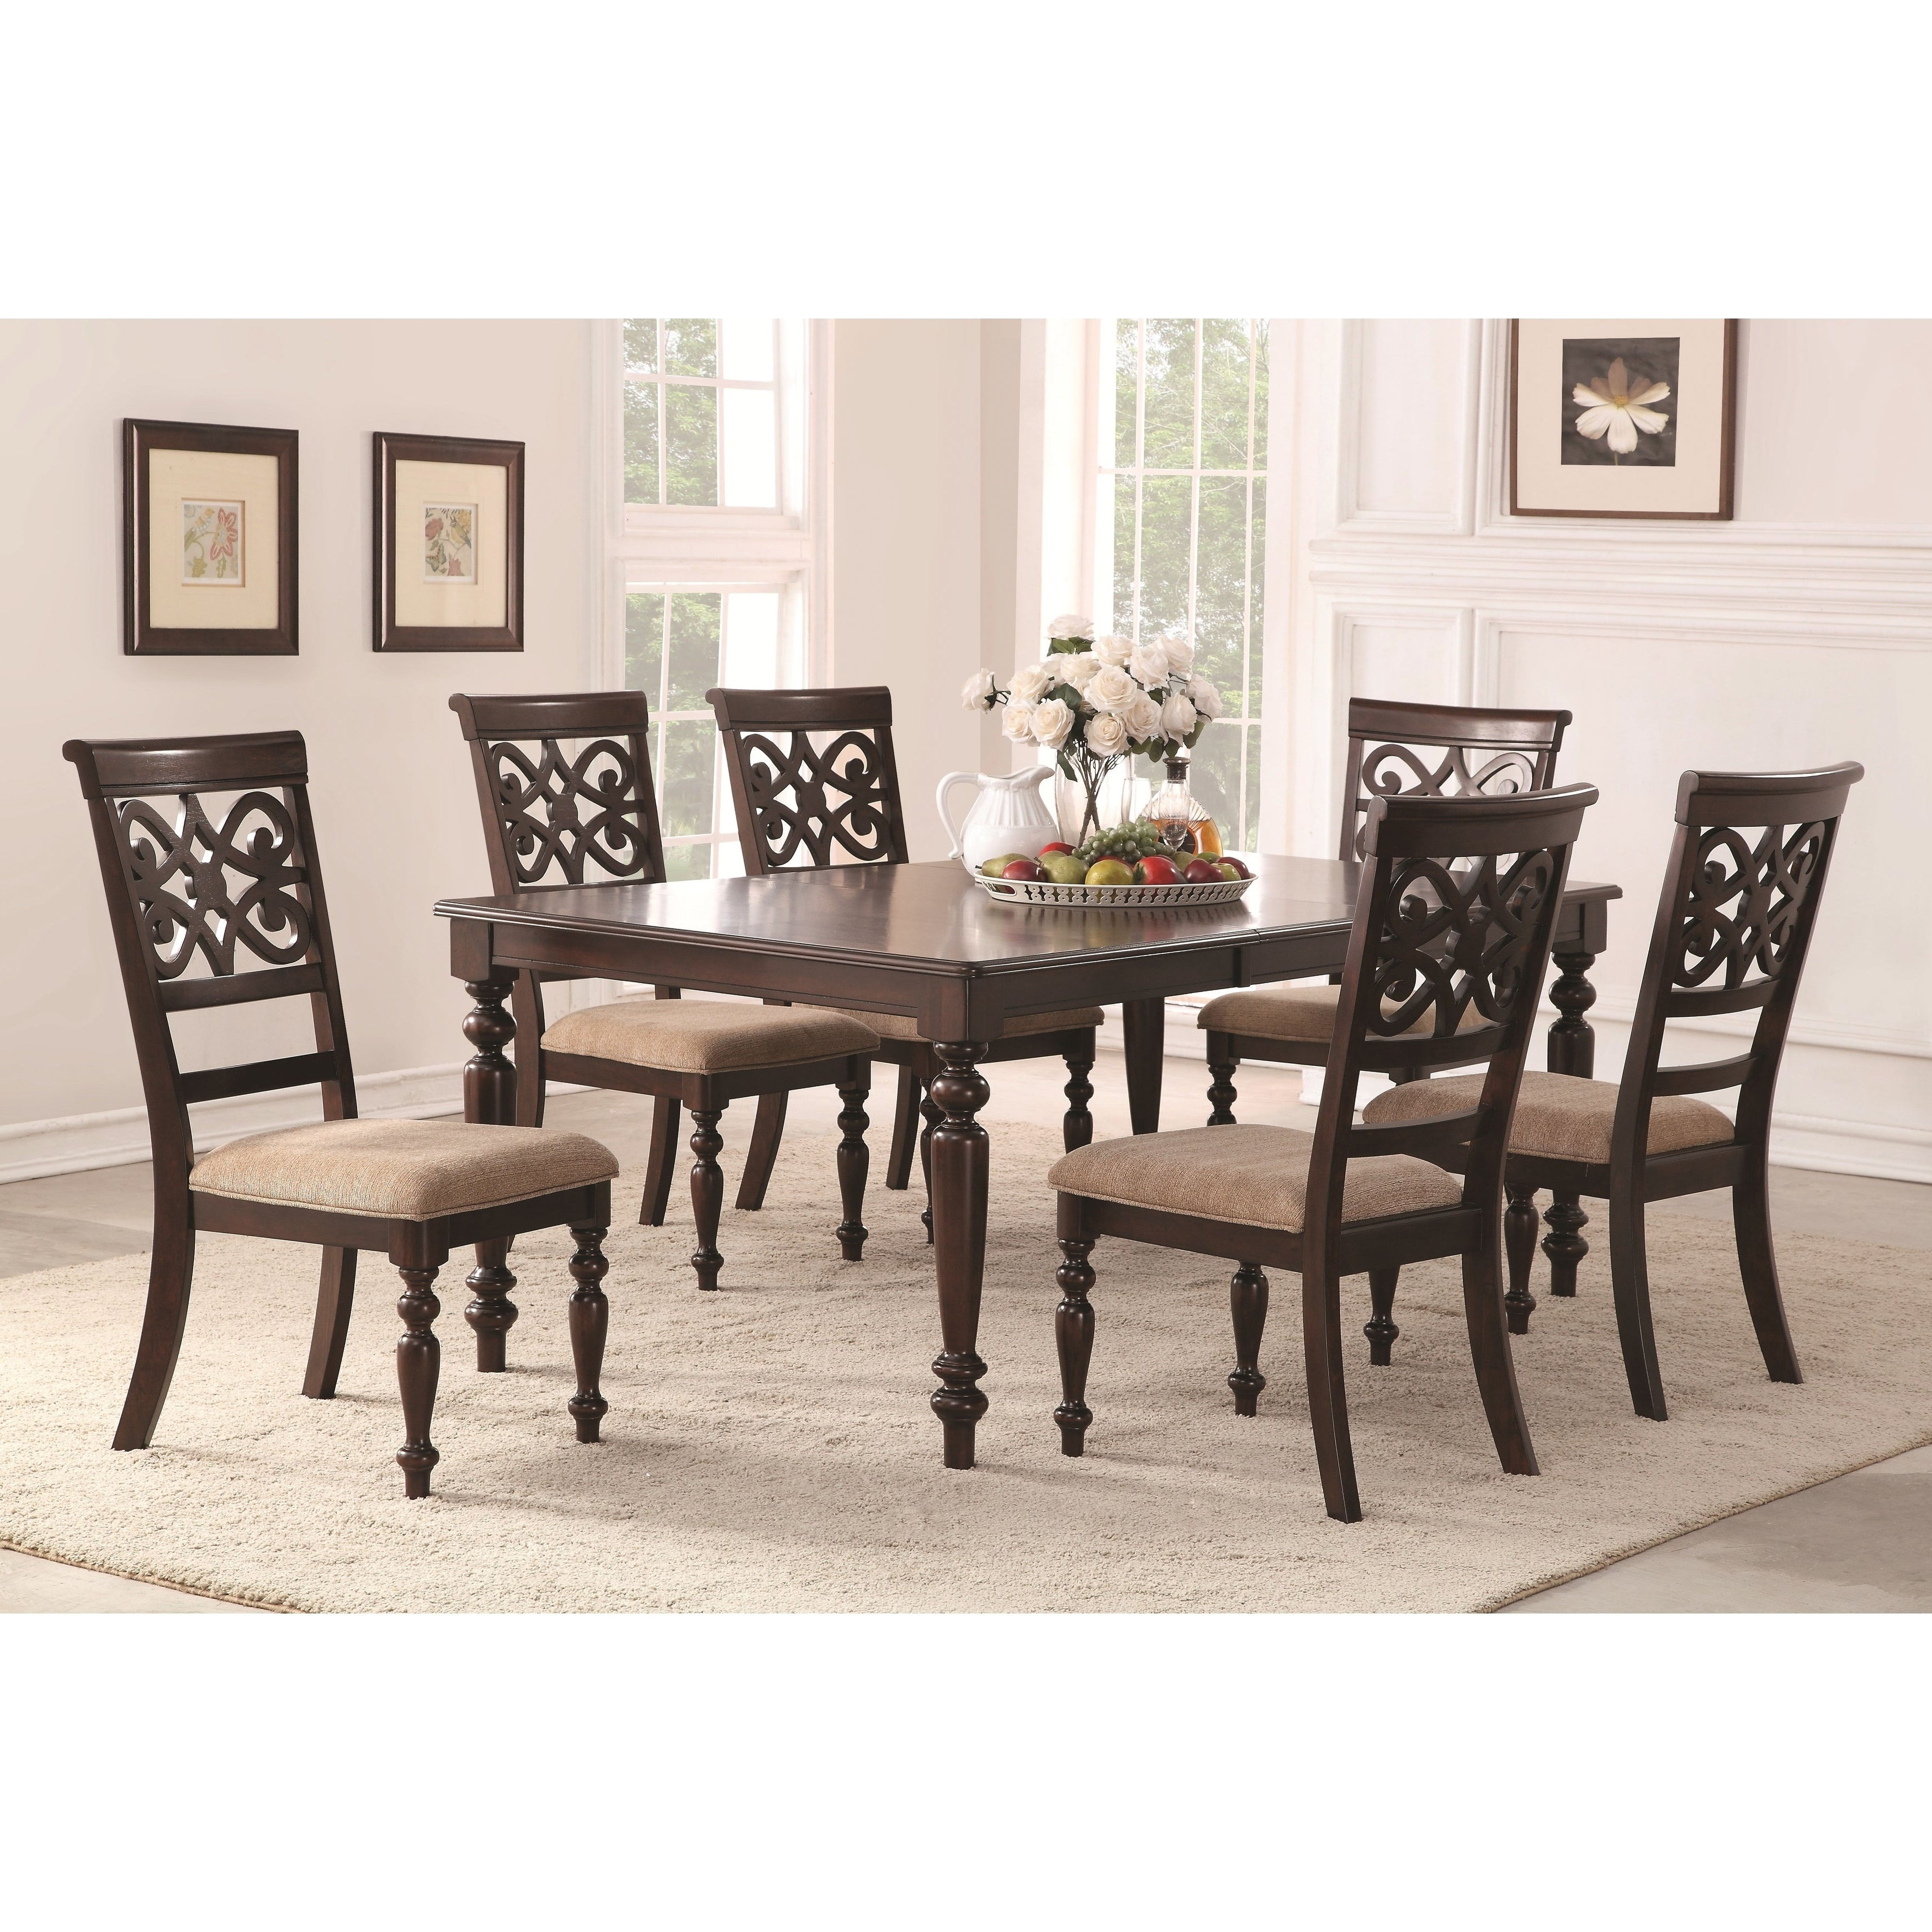 Newest Home Source Laconia Walnut 7 Piece Dining Set Pertaining To Laconia 7 Pieces Solid Wood Dining Sets (set Of 7) (View 2 of 20)